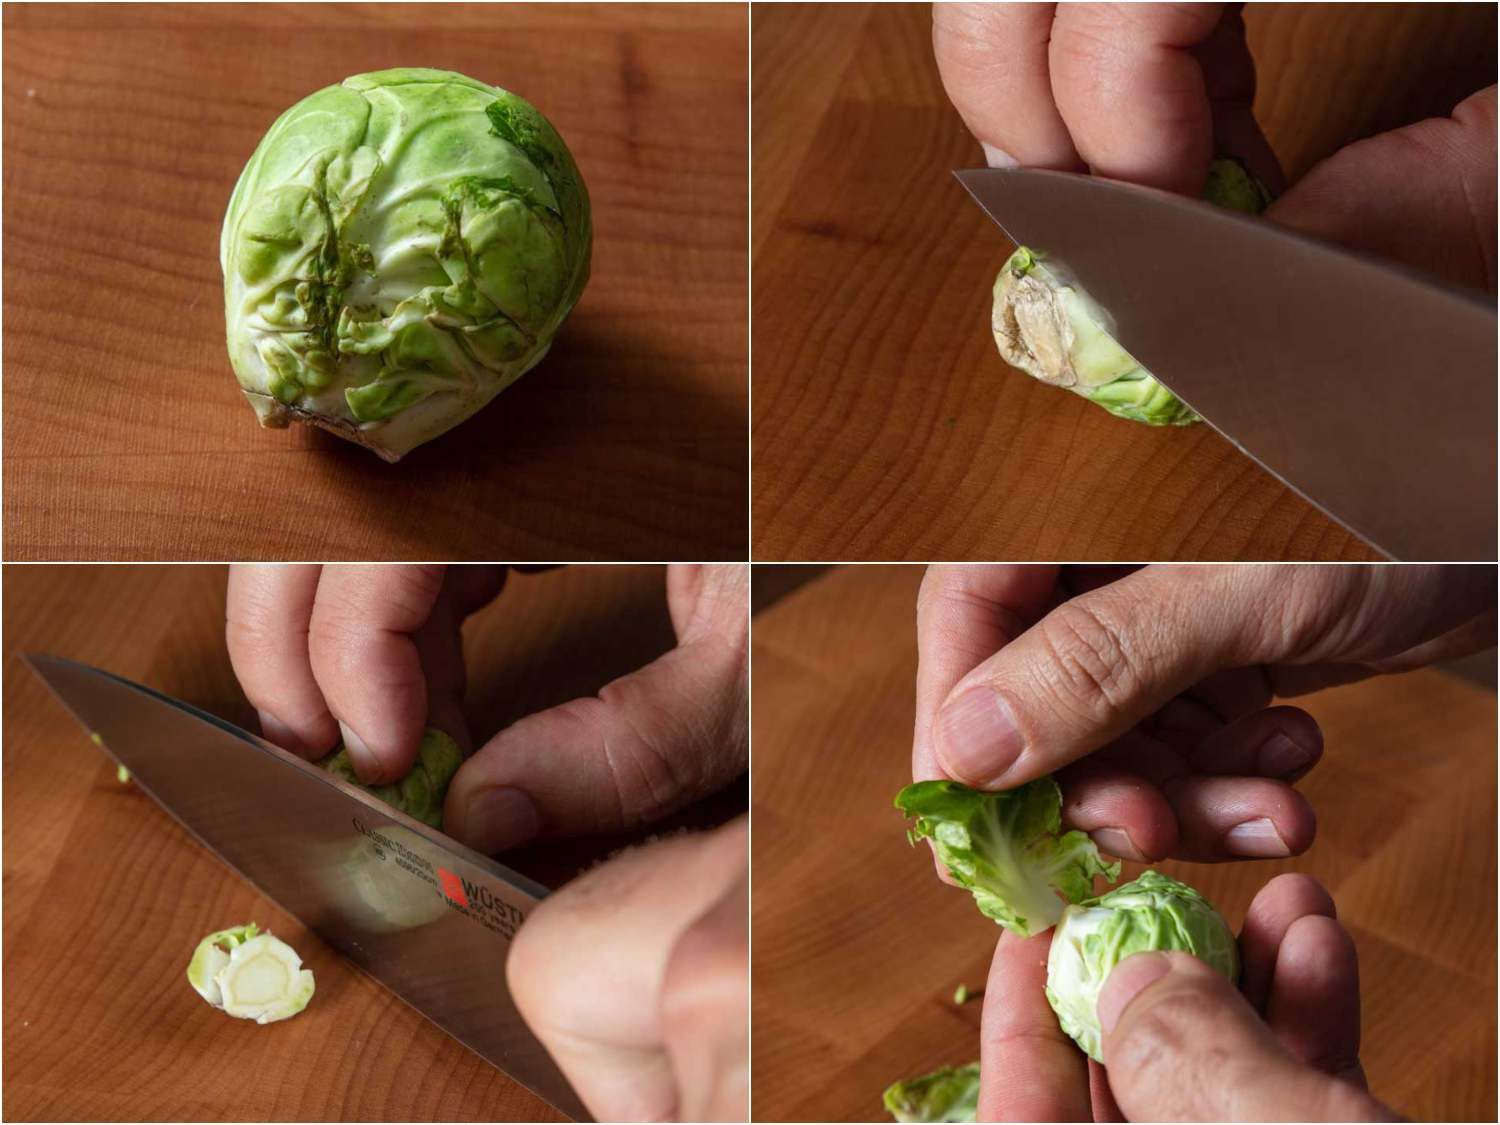 A collage showing how to remove the outer (often damaged) leaves of a Brussels sprout: trim off the base with a knife; this should help disconnect those outer leaves where they attach to the core. The leaves can then be pulled off. If you need to remove more, simply cut a bit more of the base off to detach more leaves and repeat.